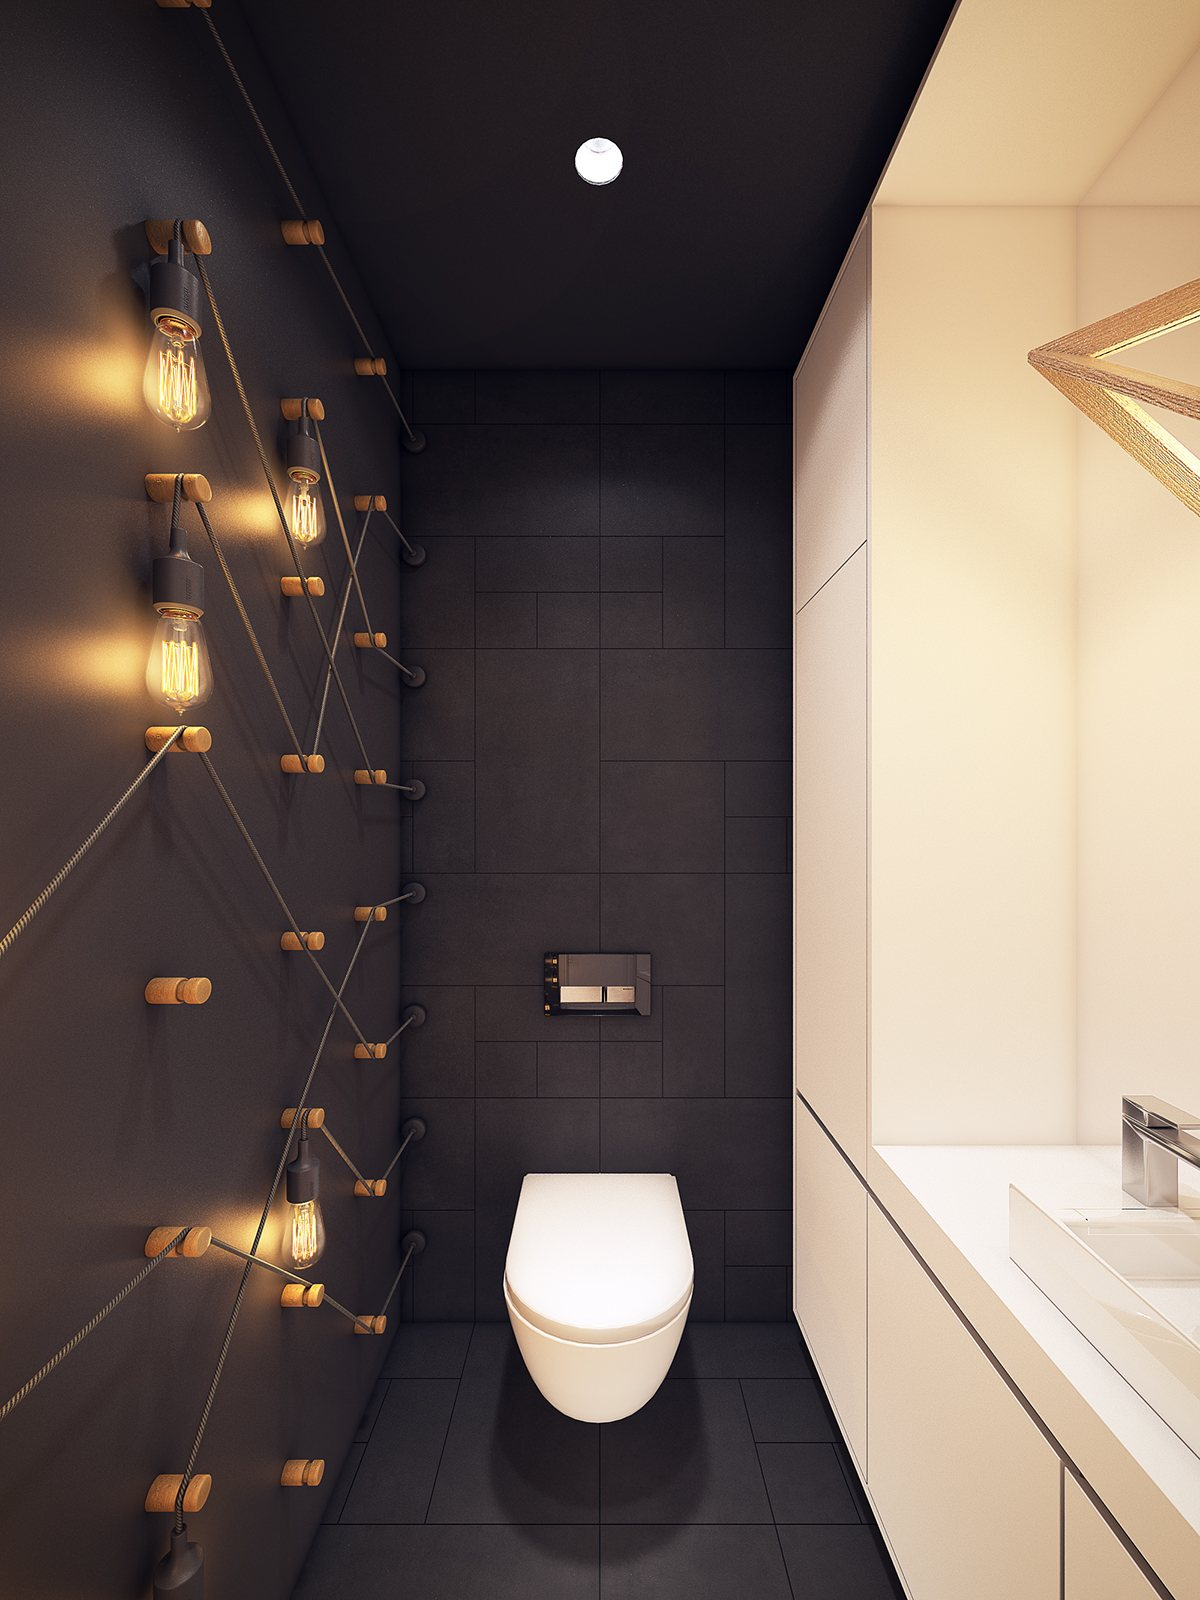 Groot modern en bijzonder toilet ontwerp interieur for Small bathroom ideas hdb